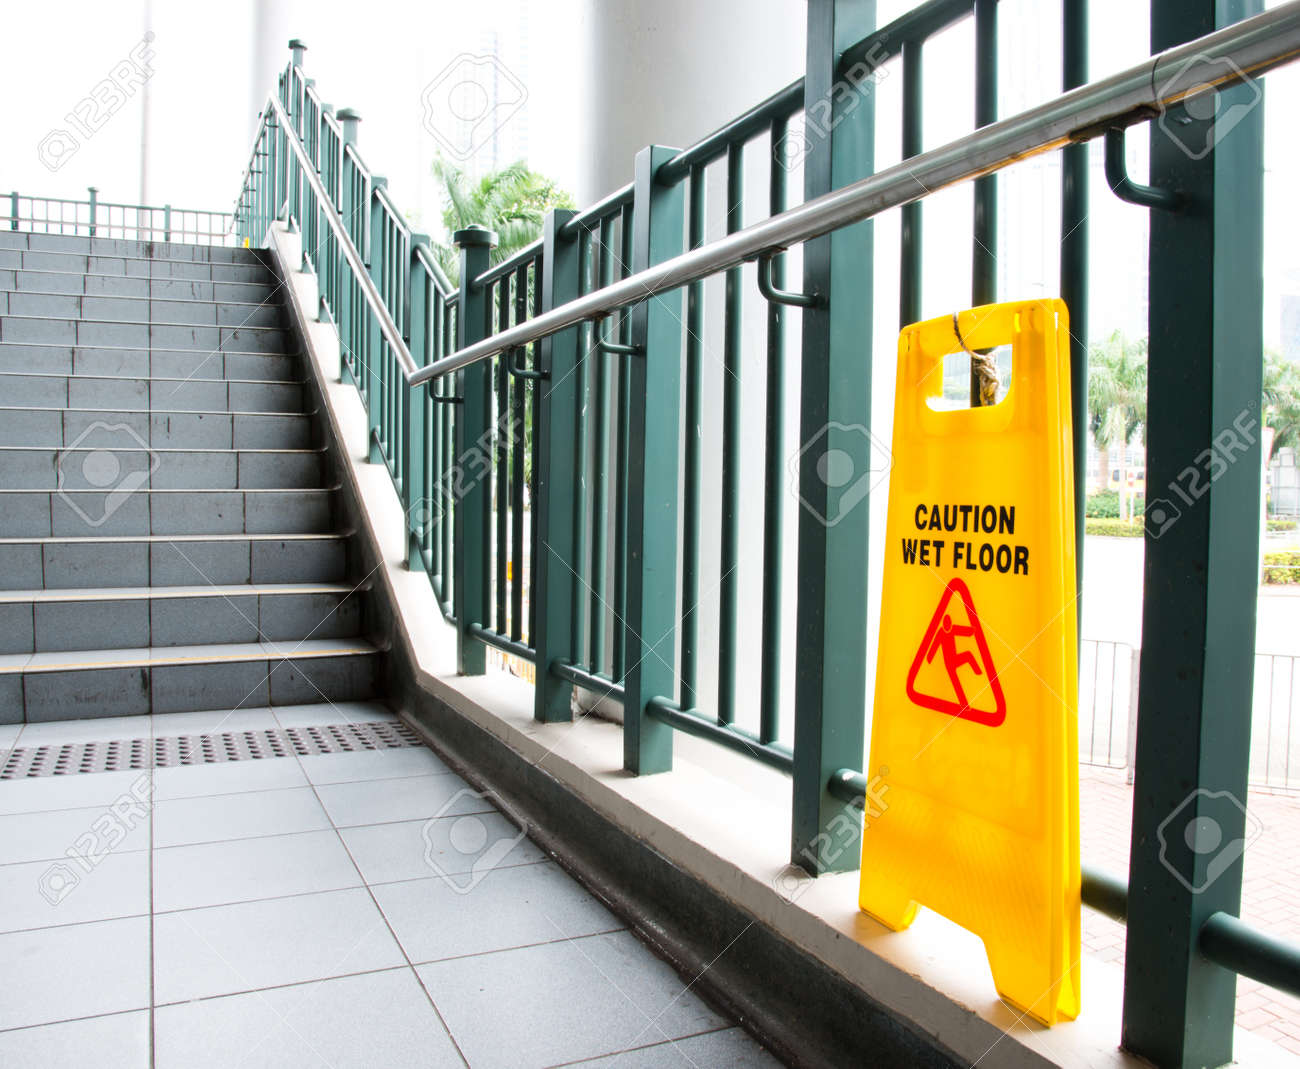 Wet floor caution sign near the stairs. - 35184492